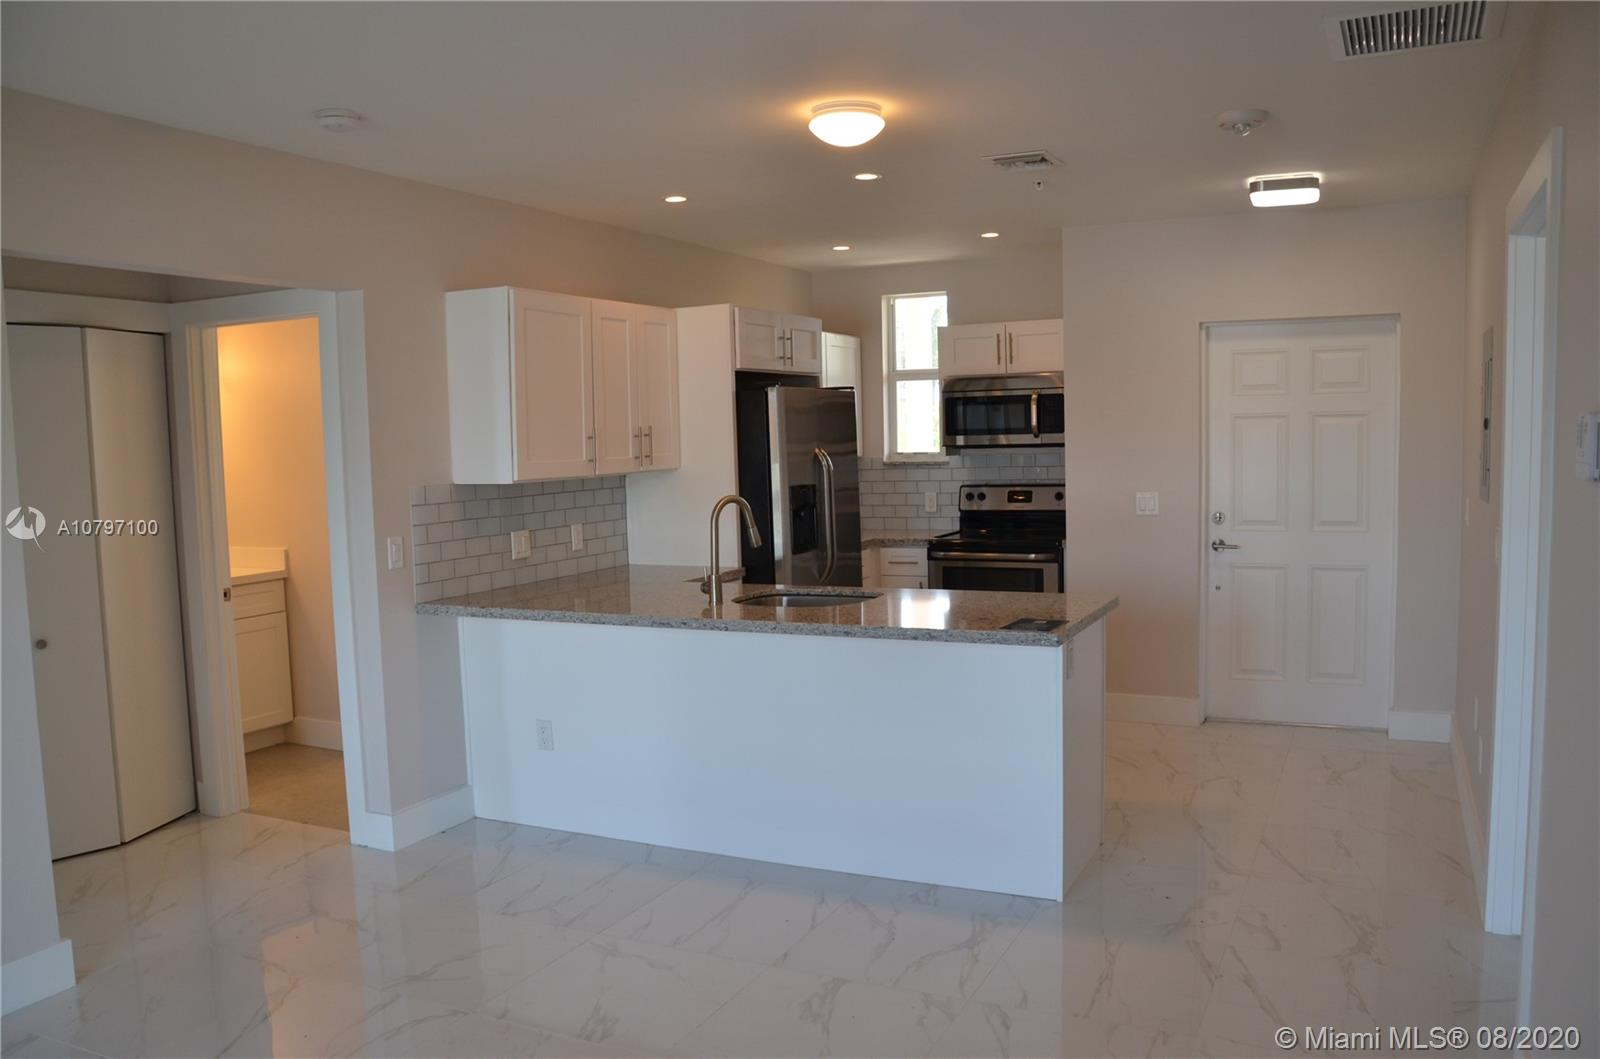 THIS IS YOUR OWN PIECE OF PARADISE IN A BOUTIQUE STYLE BUILDING WITH TOTAL OF 9 UNITS :)BUILD IN 2017 - EVERYTHING IS BRAND NEW!IT IS ELEGANT 2B/2B, WITH WHITE KITCHEN CABINETS, QUARTZ AND GLASS COUNTER TOPS; STAINLESS STEEL APPLIANCES; PORCELAIN FLOORS; WASHER AND DRYER IN THE UNIT.AMENITIES - PRIVATE GYM AND SWIMMING POOL.PARKING - 2 DESIGNATED PARKING SPACES.THE LOCATION OF THIS PROPERTY IS GREAT - WALKING DISTANCE TO THE BEACH, CASINO&SHOPPING CENTER. EXCELLENT SCHOOLS. 5 MIN DRIVING DISTANCE TO FORT LAUDERDALE  AIRPORT.